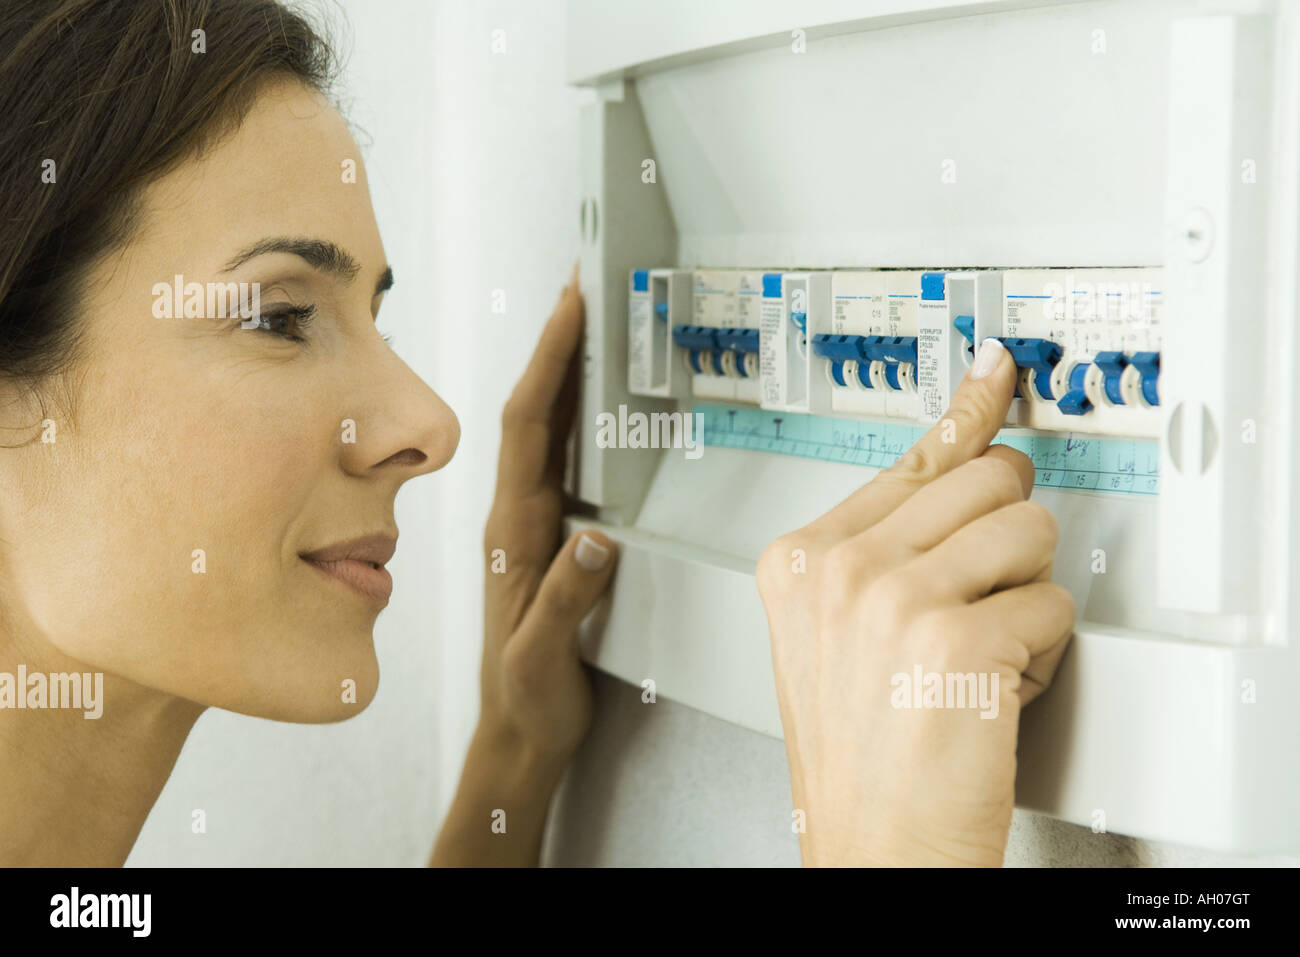 Domestic Fuse Box Stock Photos Images Alamy Ah Woman Pushing Lever In Image